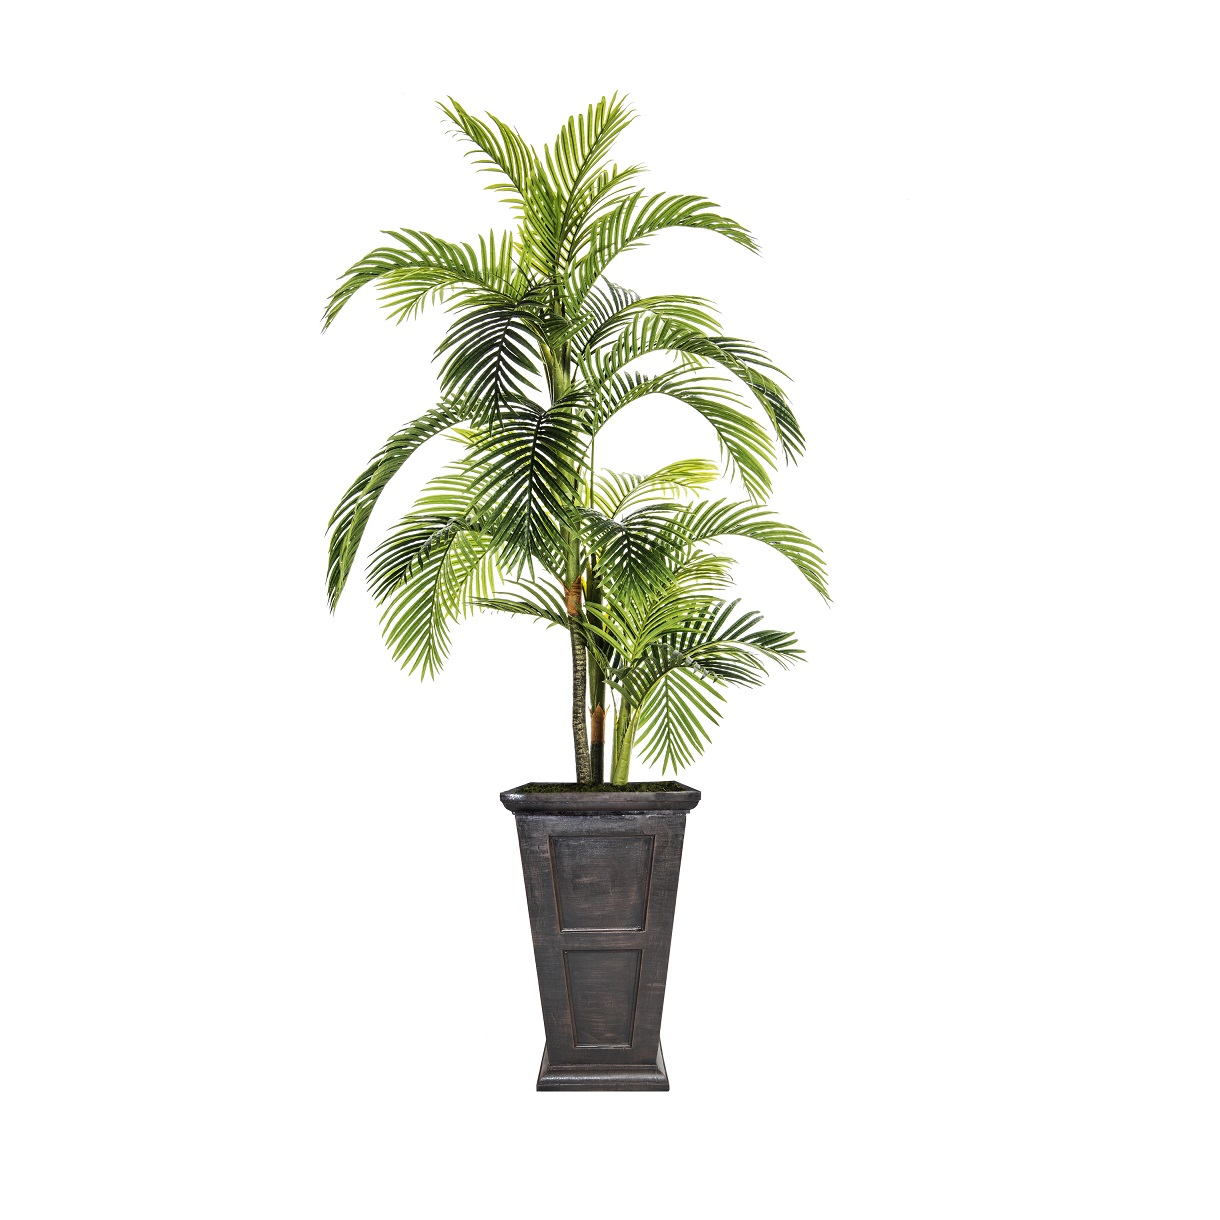 Fiberstone Palm Tree In Planter By Laura Ashley Home